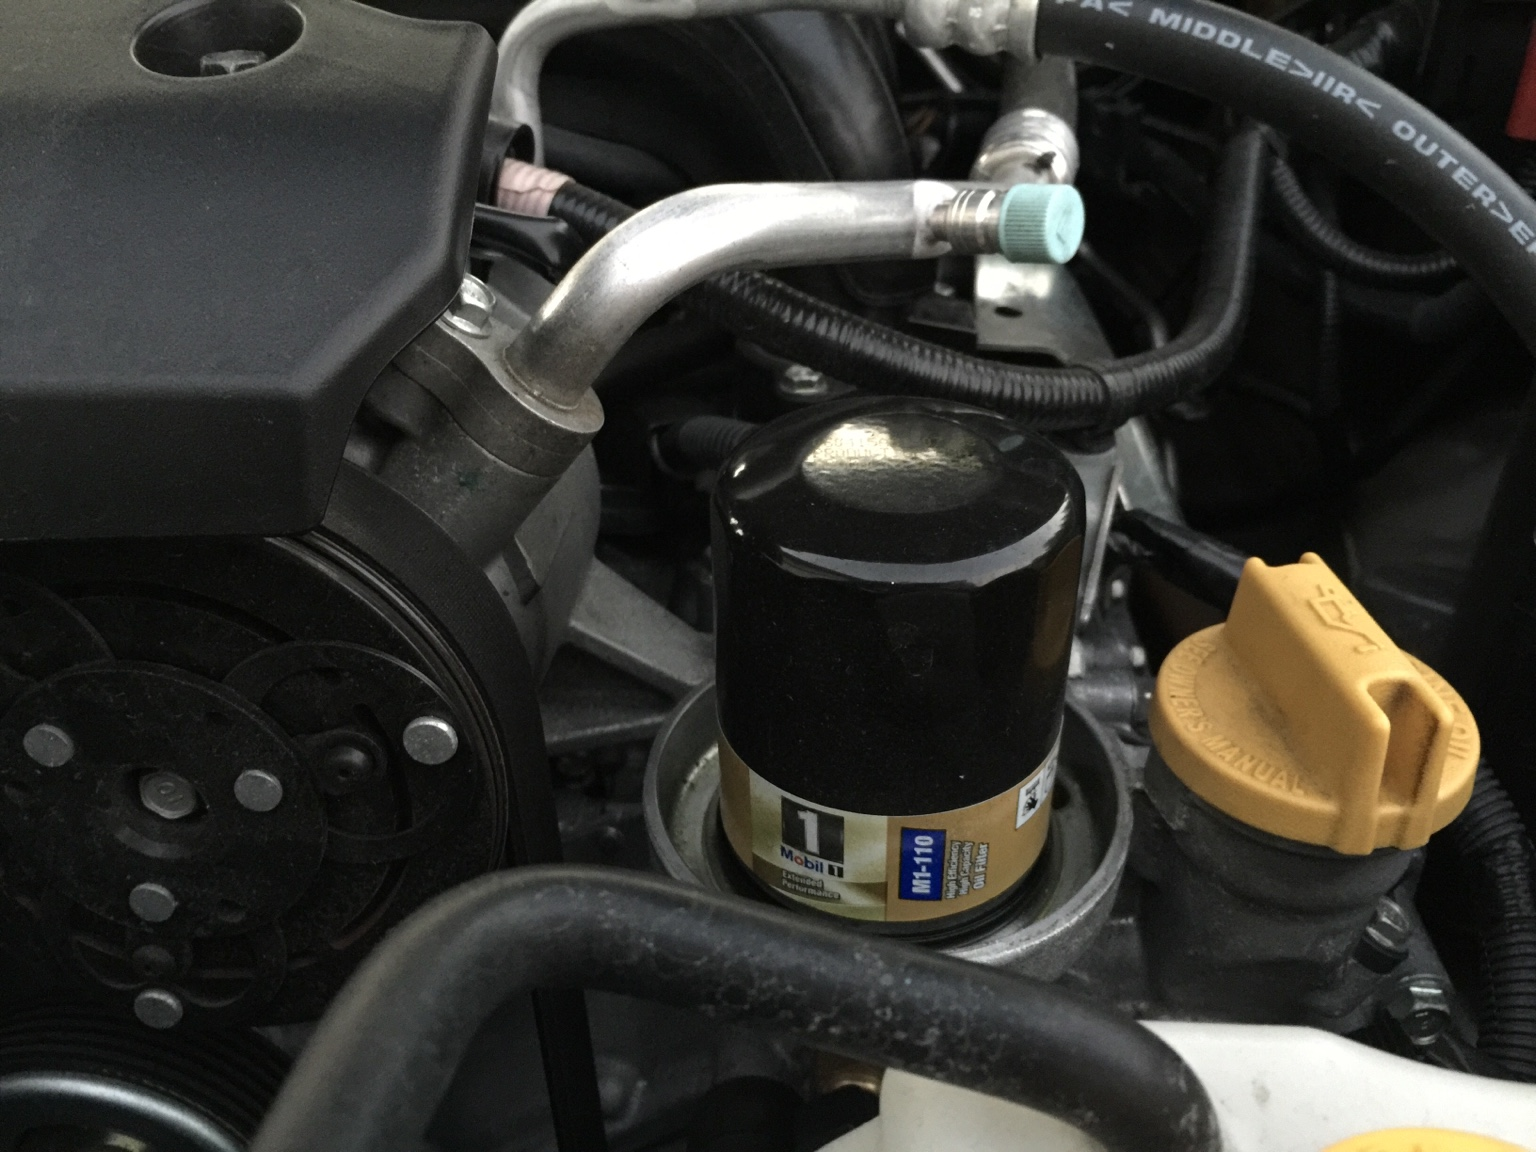 Mobil 1 Oil Filter 108 Or 110 2013 Subaru Impreza Fuel Location Second Change Ive Done Using These Filters And They Work Just Fine The Book In Advance Auto Parts Had It Listed I Went With